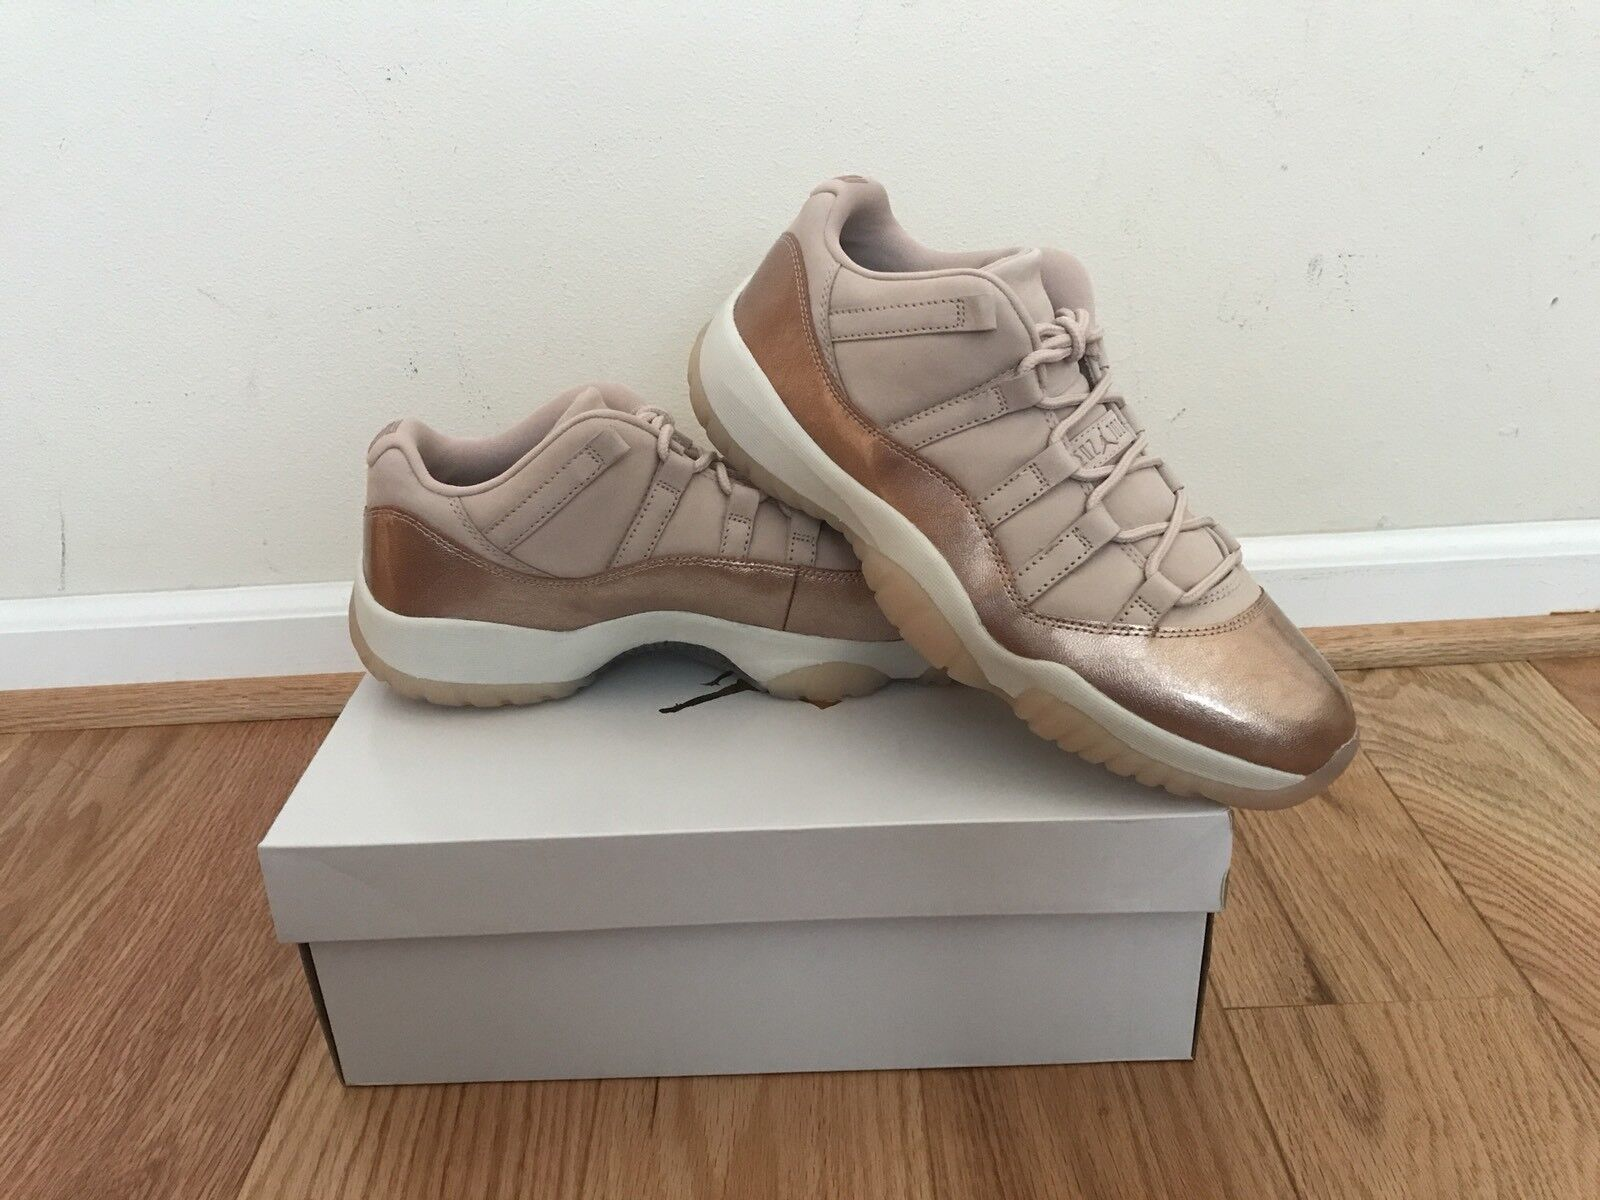 Nike Air Jordan 11 Low Metallic Rose Gold Red Price reduction Women's size 11.5 Wild casual shoes